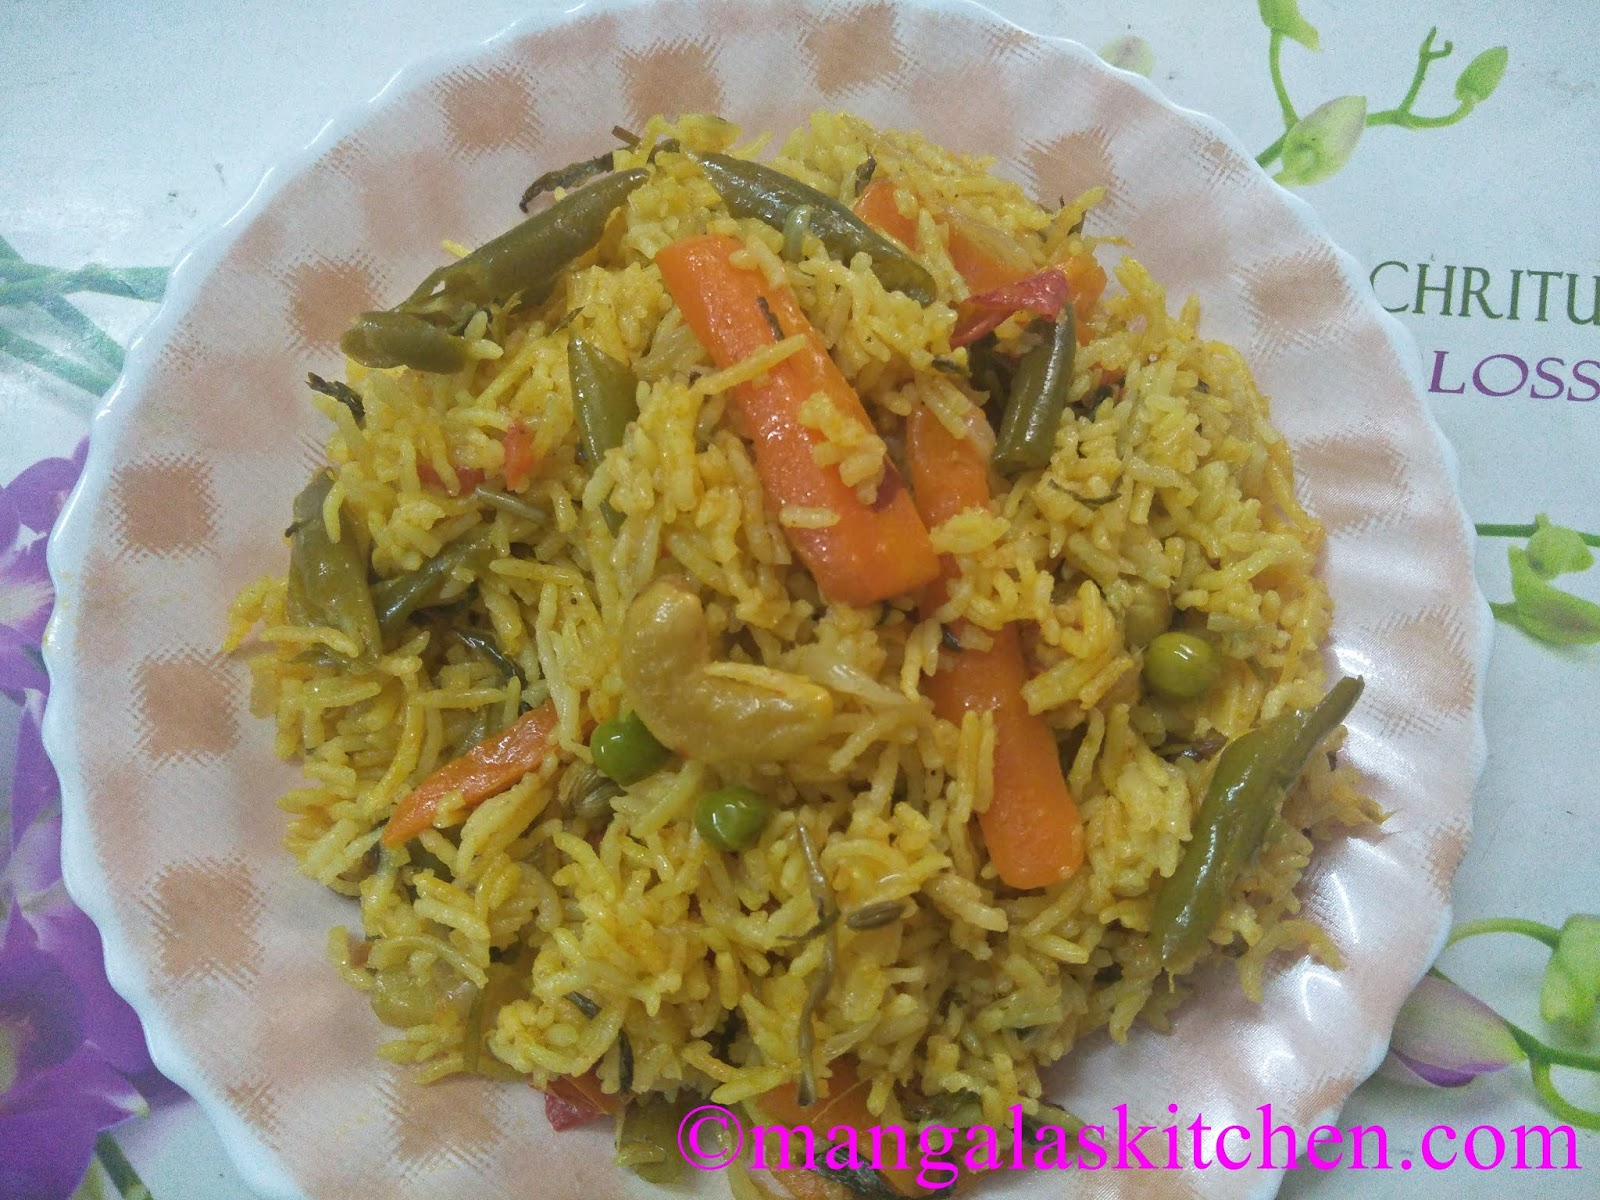 Hotel Style Mixed Vegetable Biryani Diwali Special Vegetable Biryani Traditional Authentic South Indian Veg Biryani Recipe Mangala S Kitchen